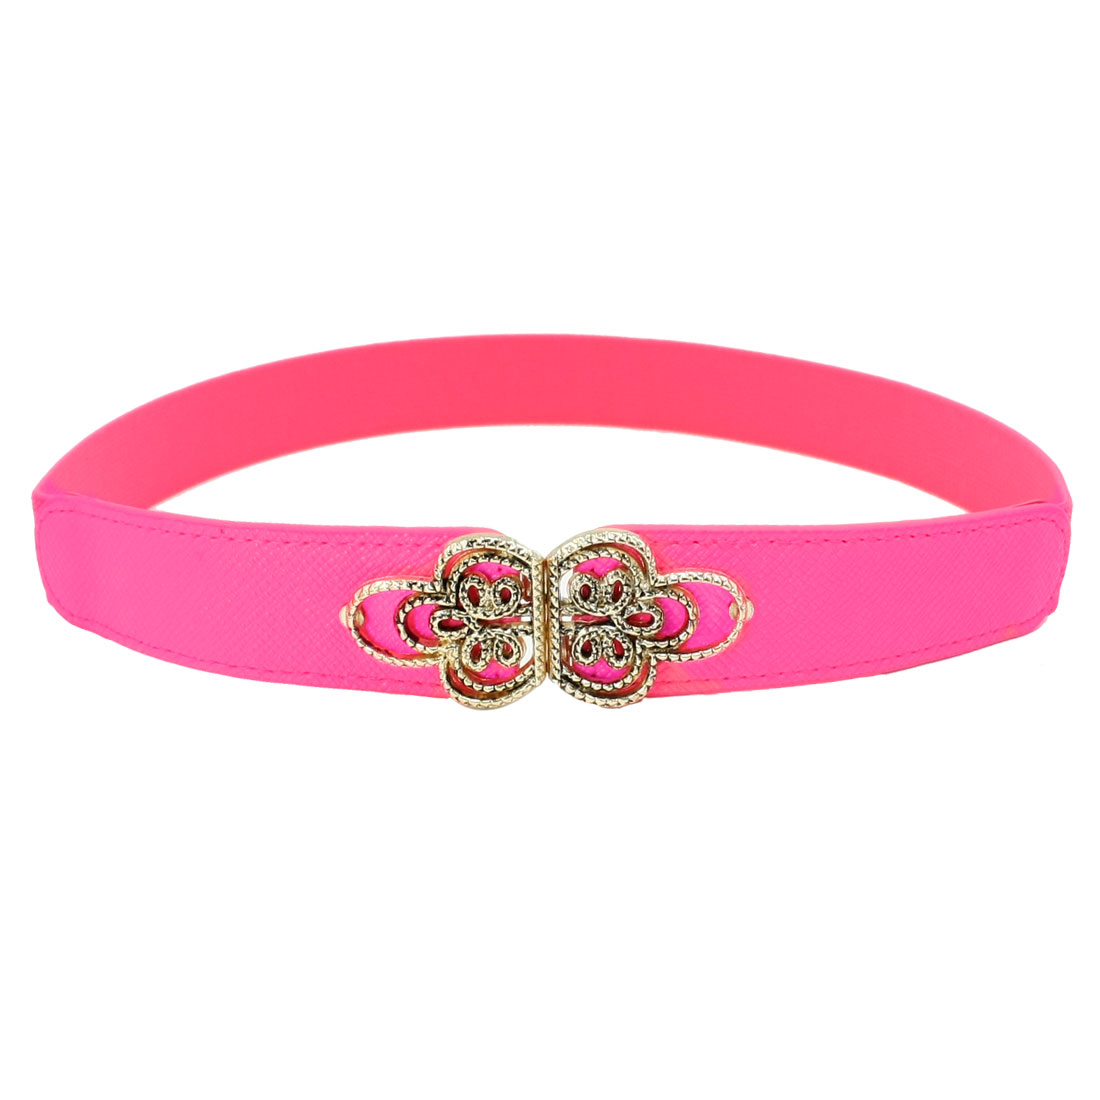 Ladies Chinese Knot Shape Metal Interlocking Buckle Stretchy Waist Belt Hot Pink